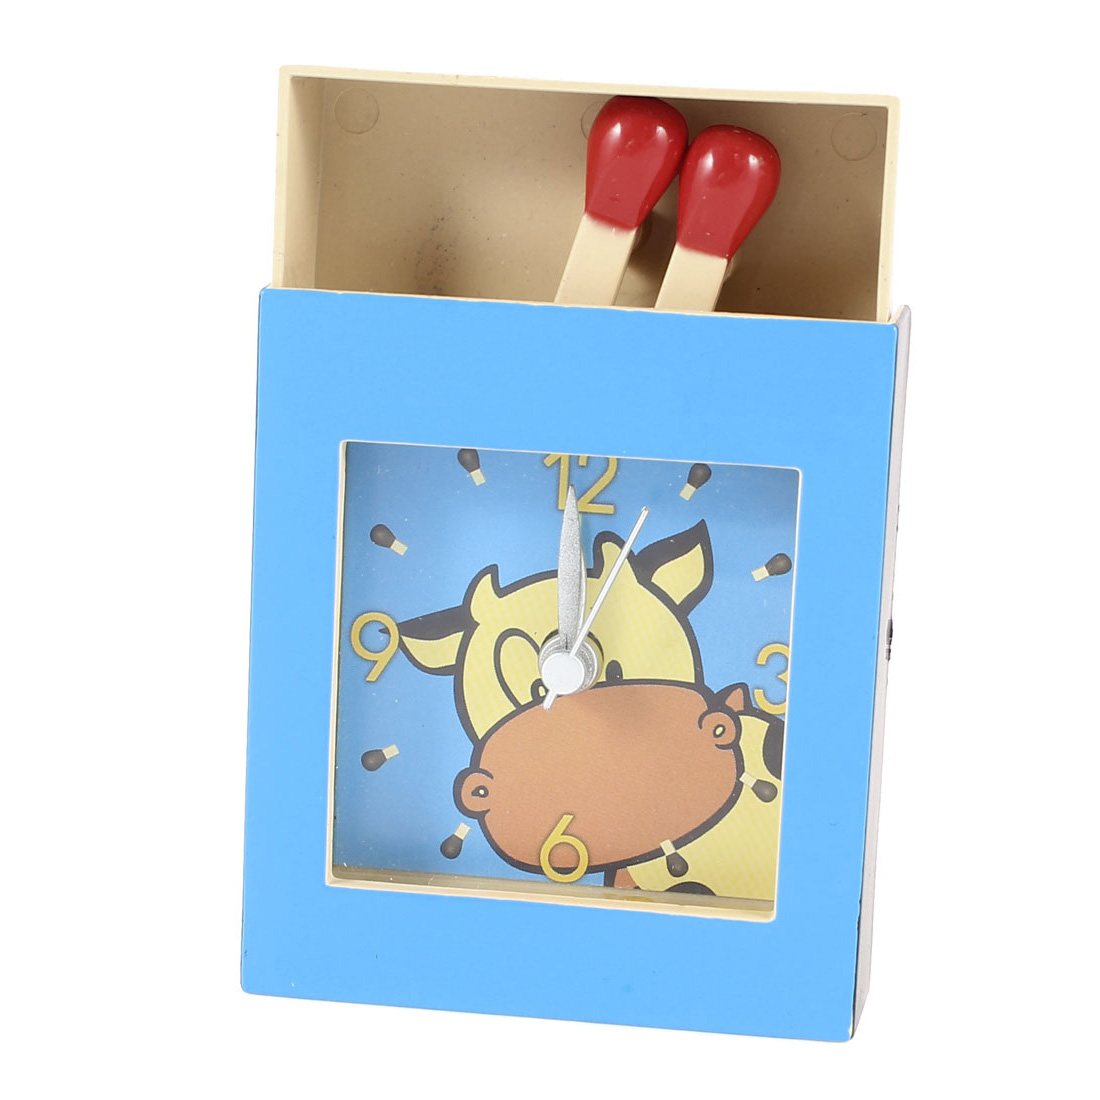 Matchbox Shape Plastic Cartoon Cow Print Arabic Number Alarm Clock Blue Khaki